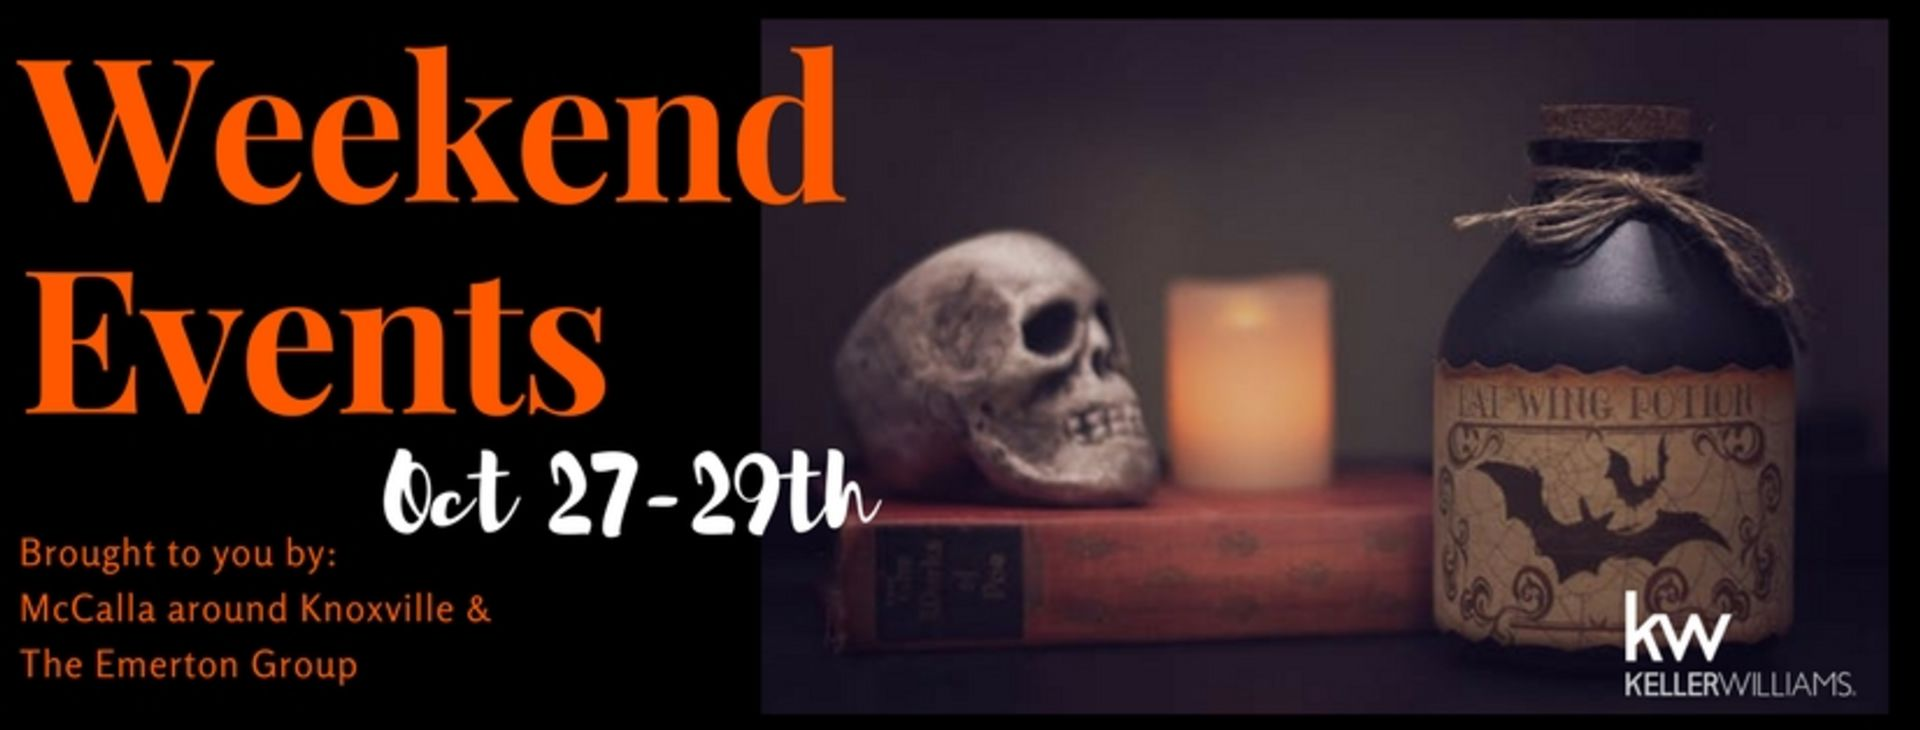 Knoxville Weekend Events October 27-29th